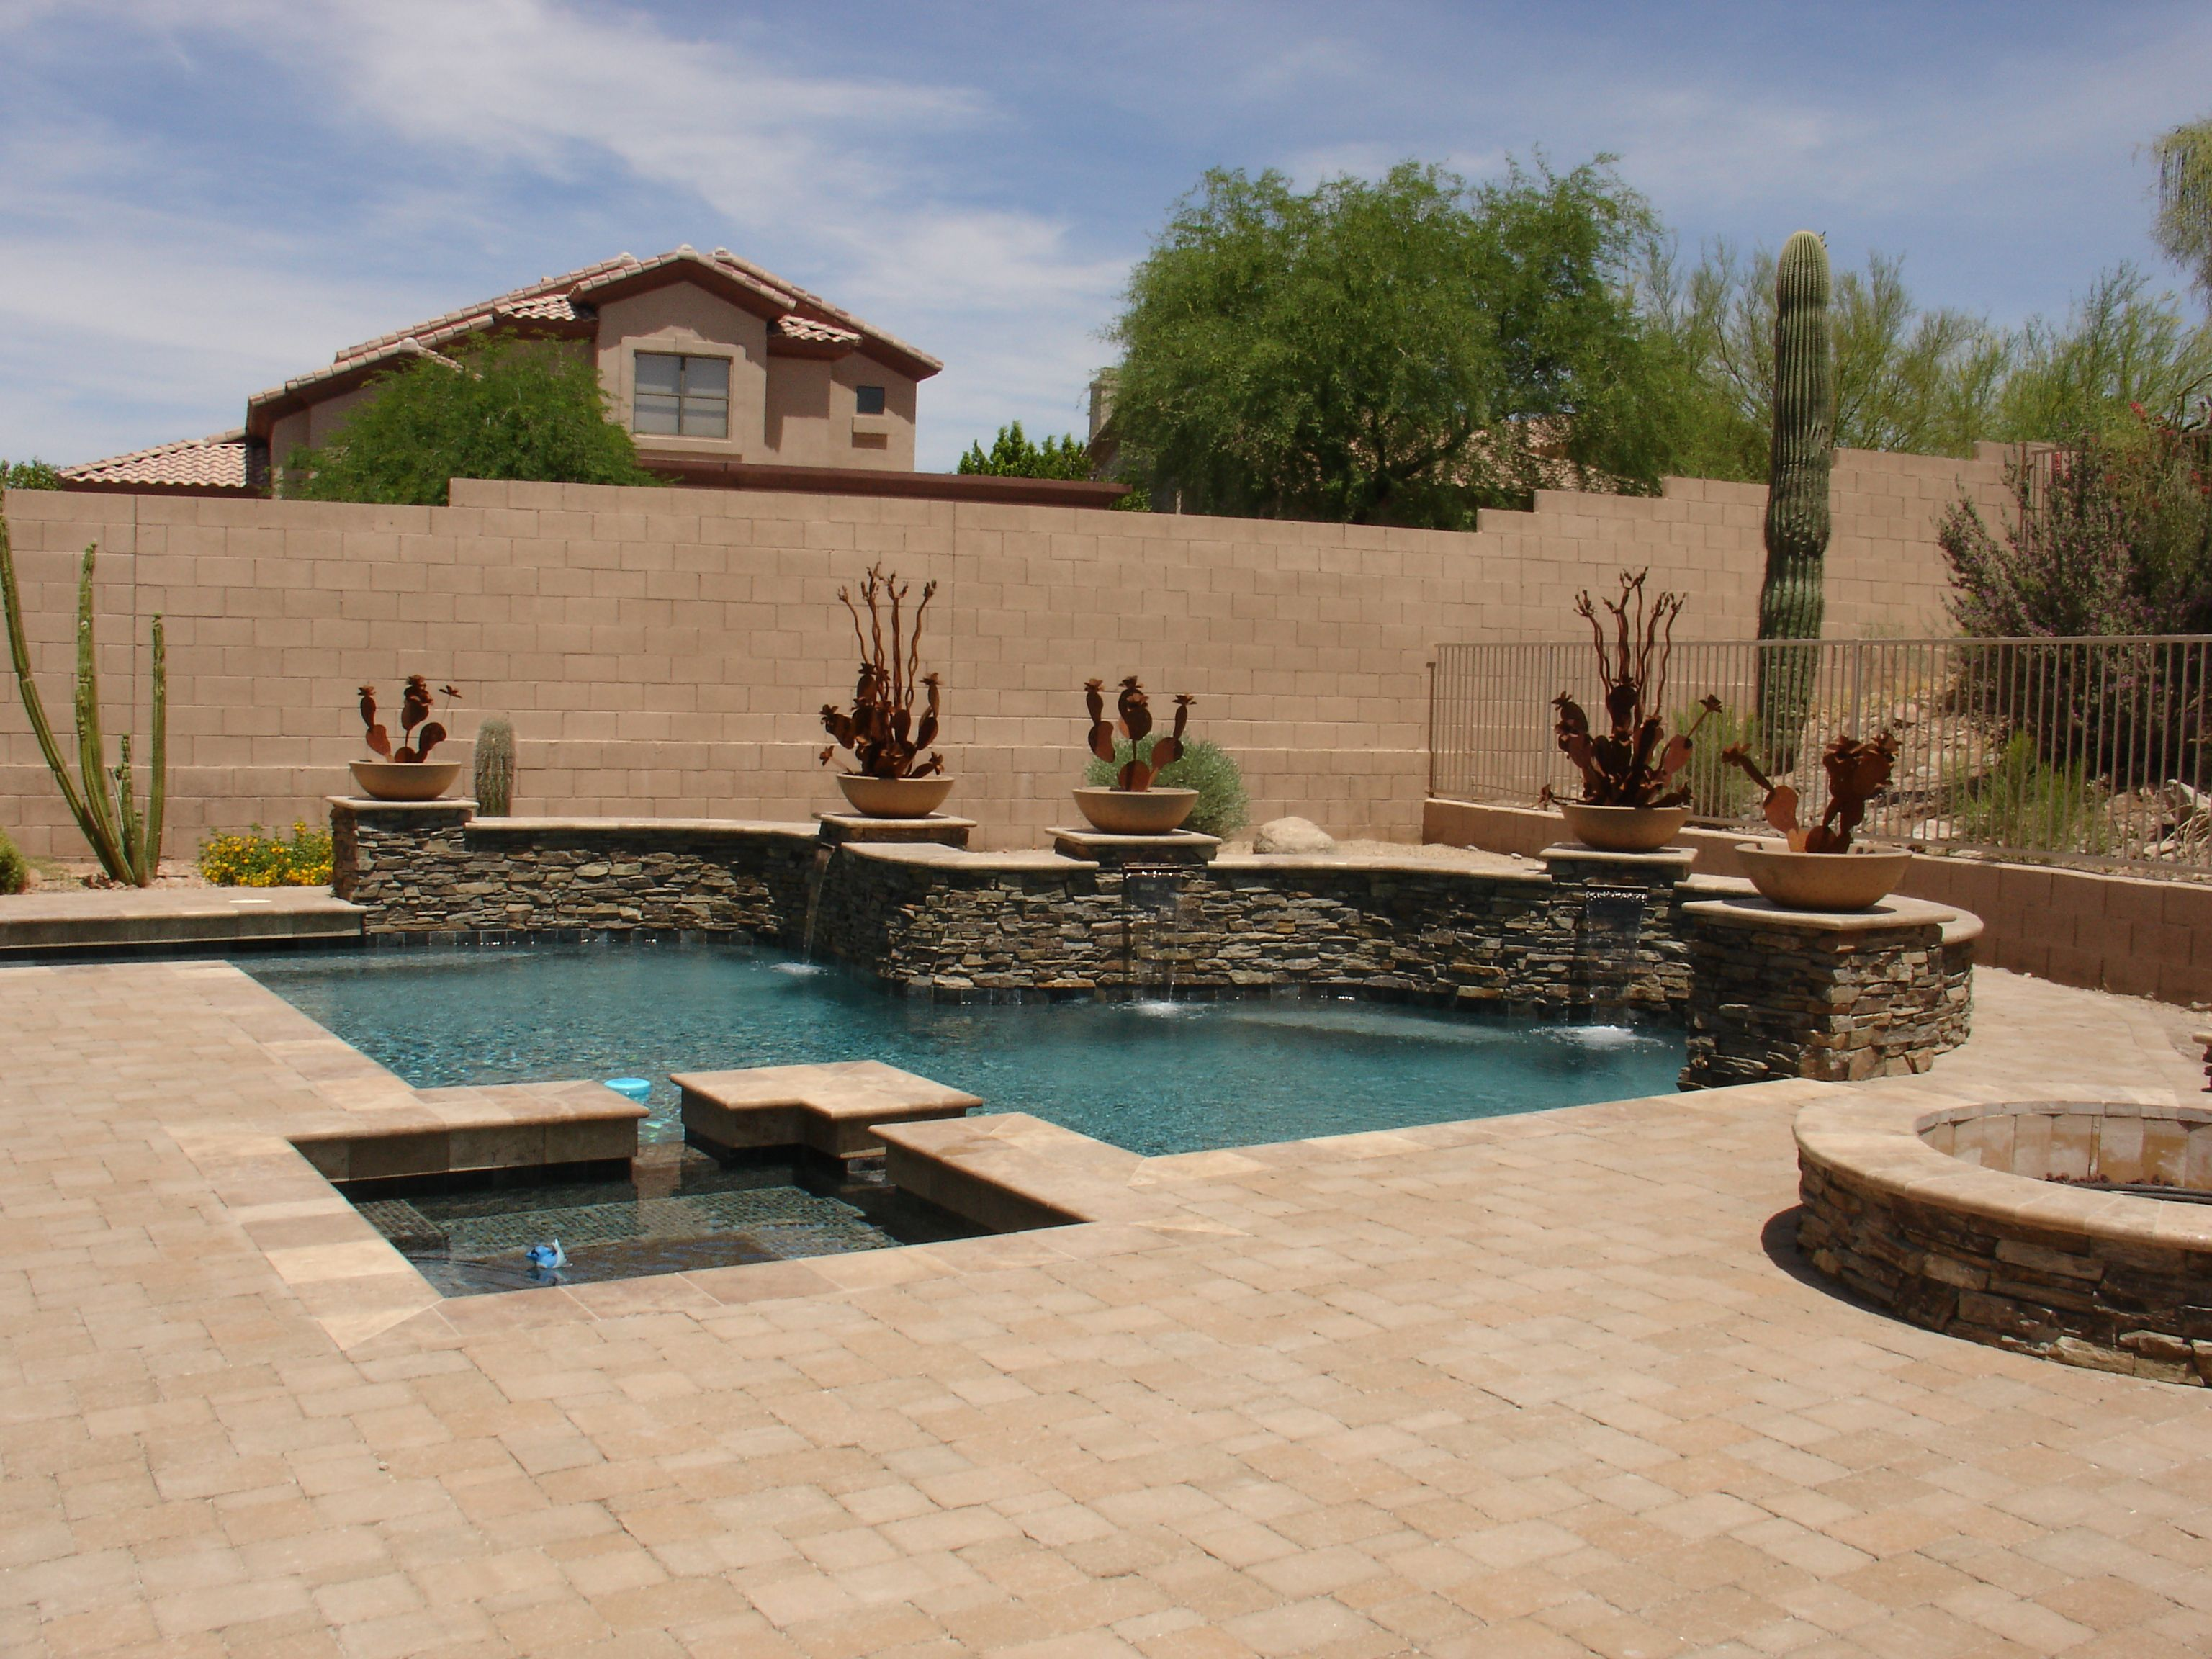 More Pool Pool Planters Backyard Pool Designs Swimming Pools